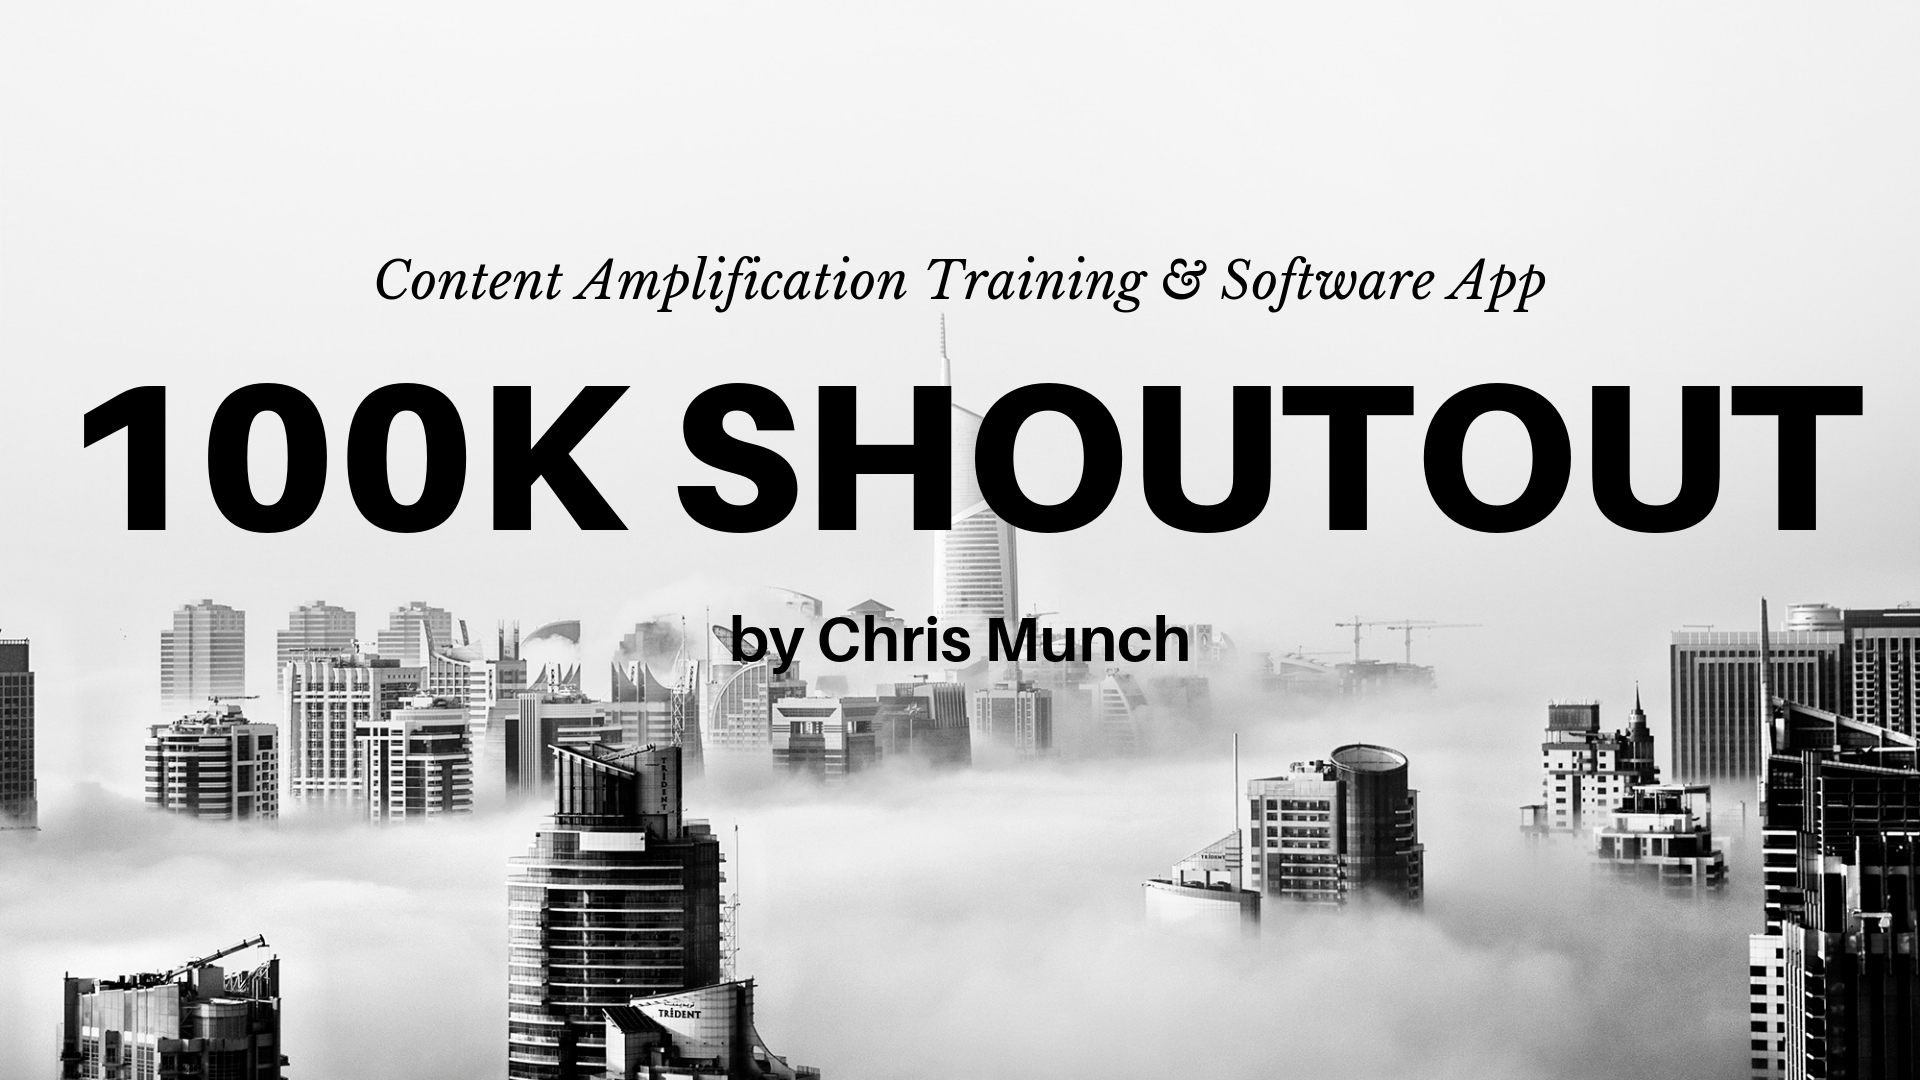 100K shoutout review training software app